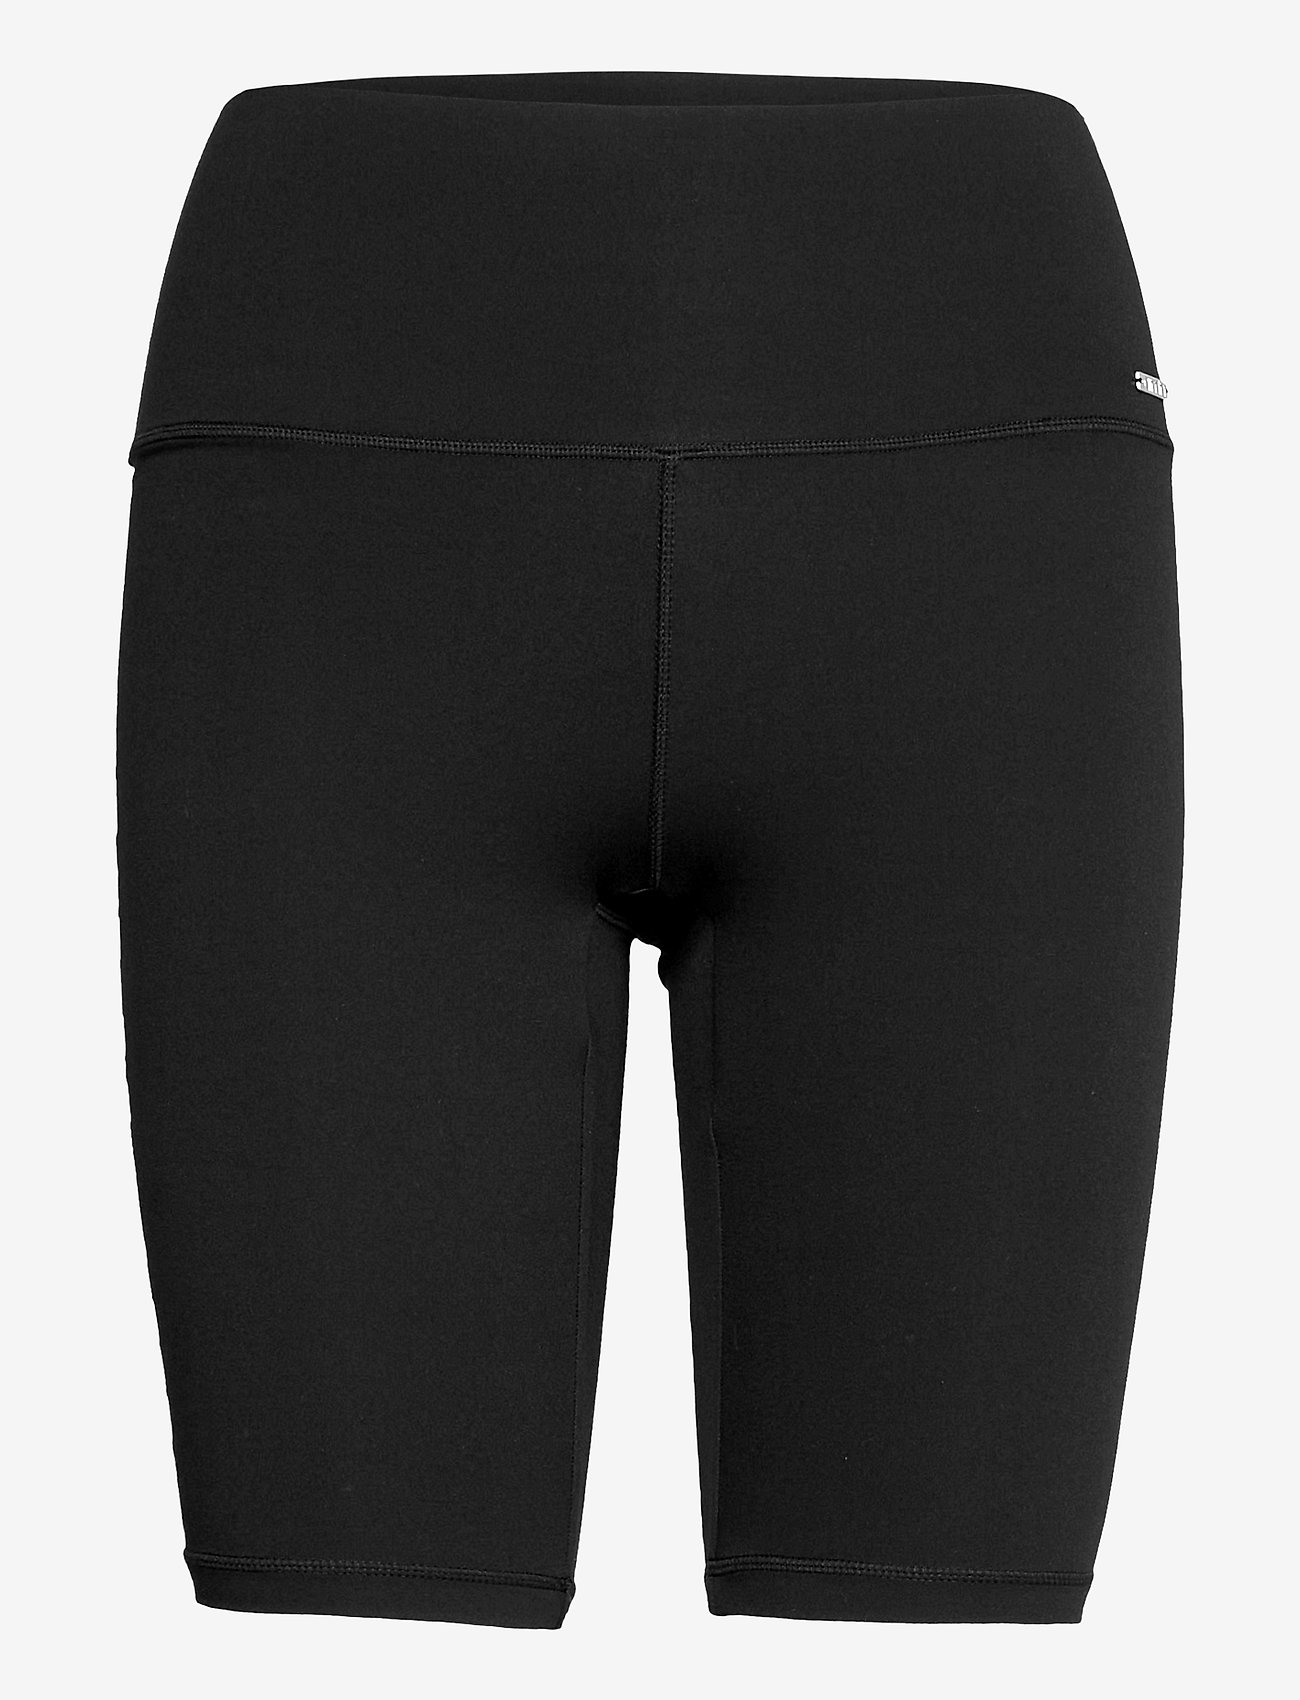 AIM'N - Word Black Soft Biker Shorts - træningsshorts - black - 1